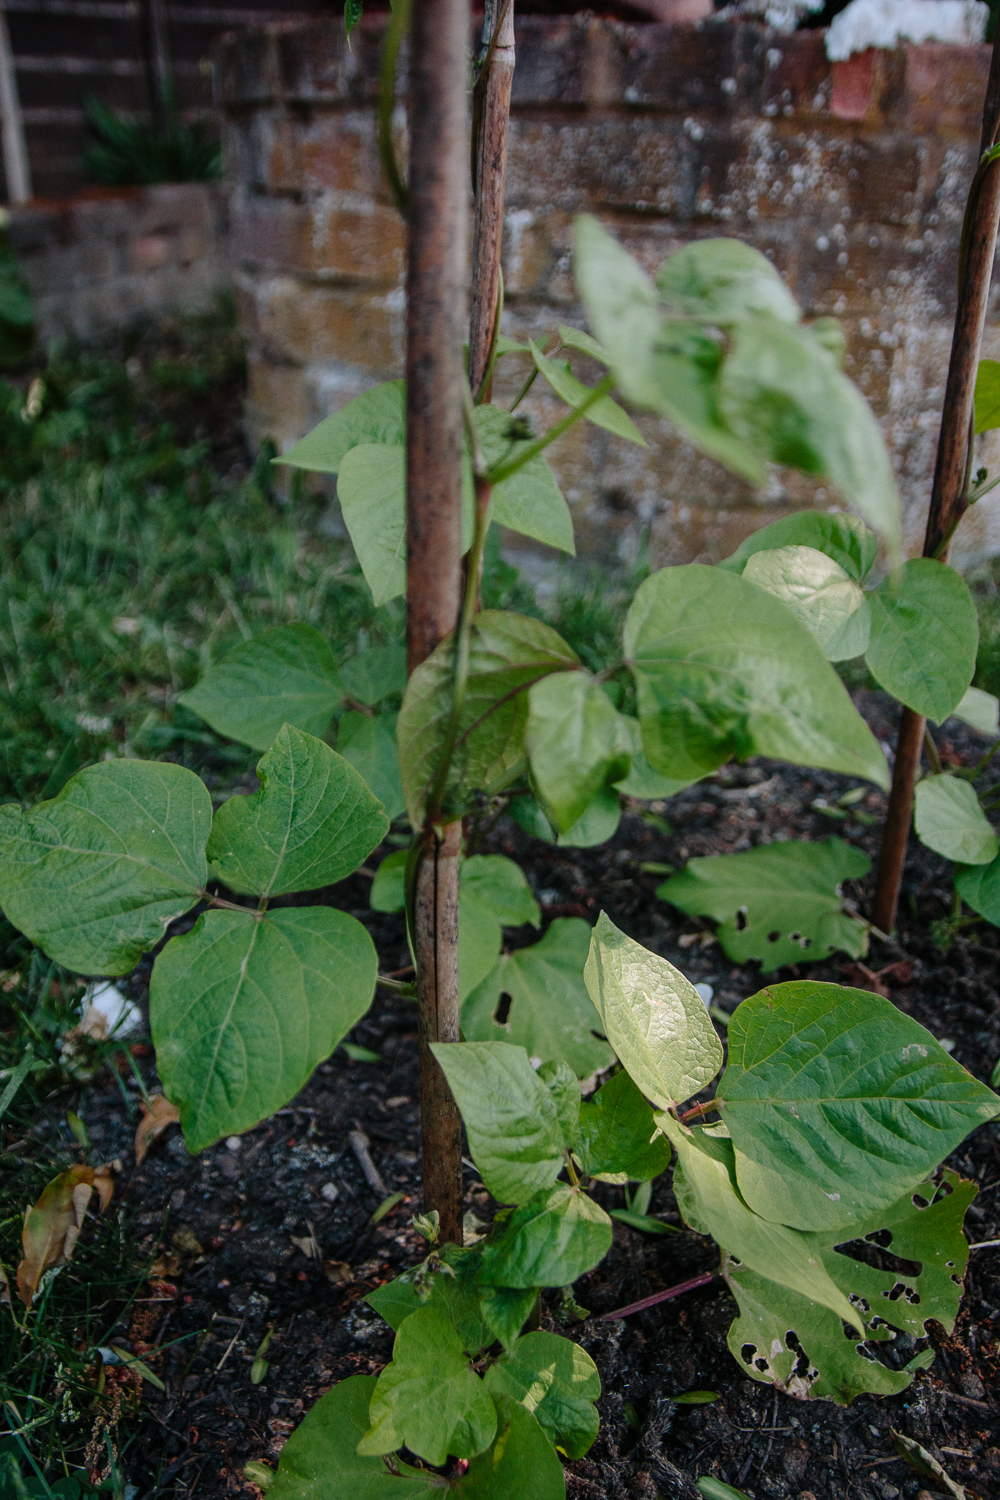 Grow Your Own - Runner Beans